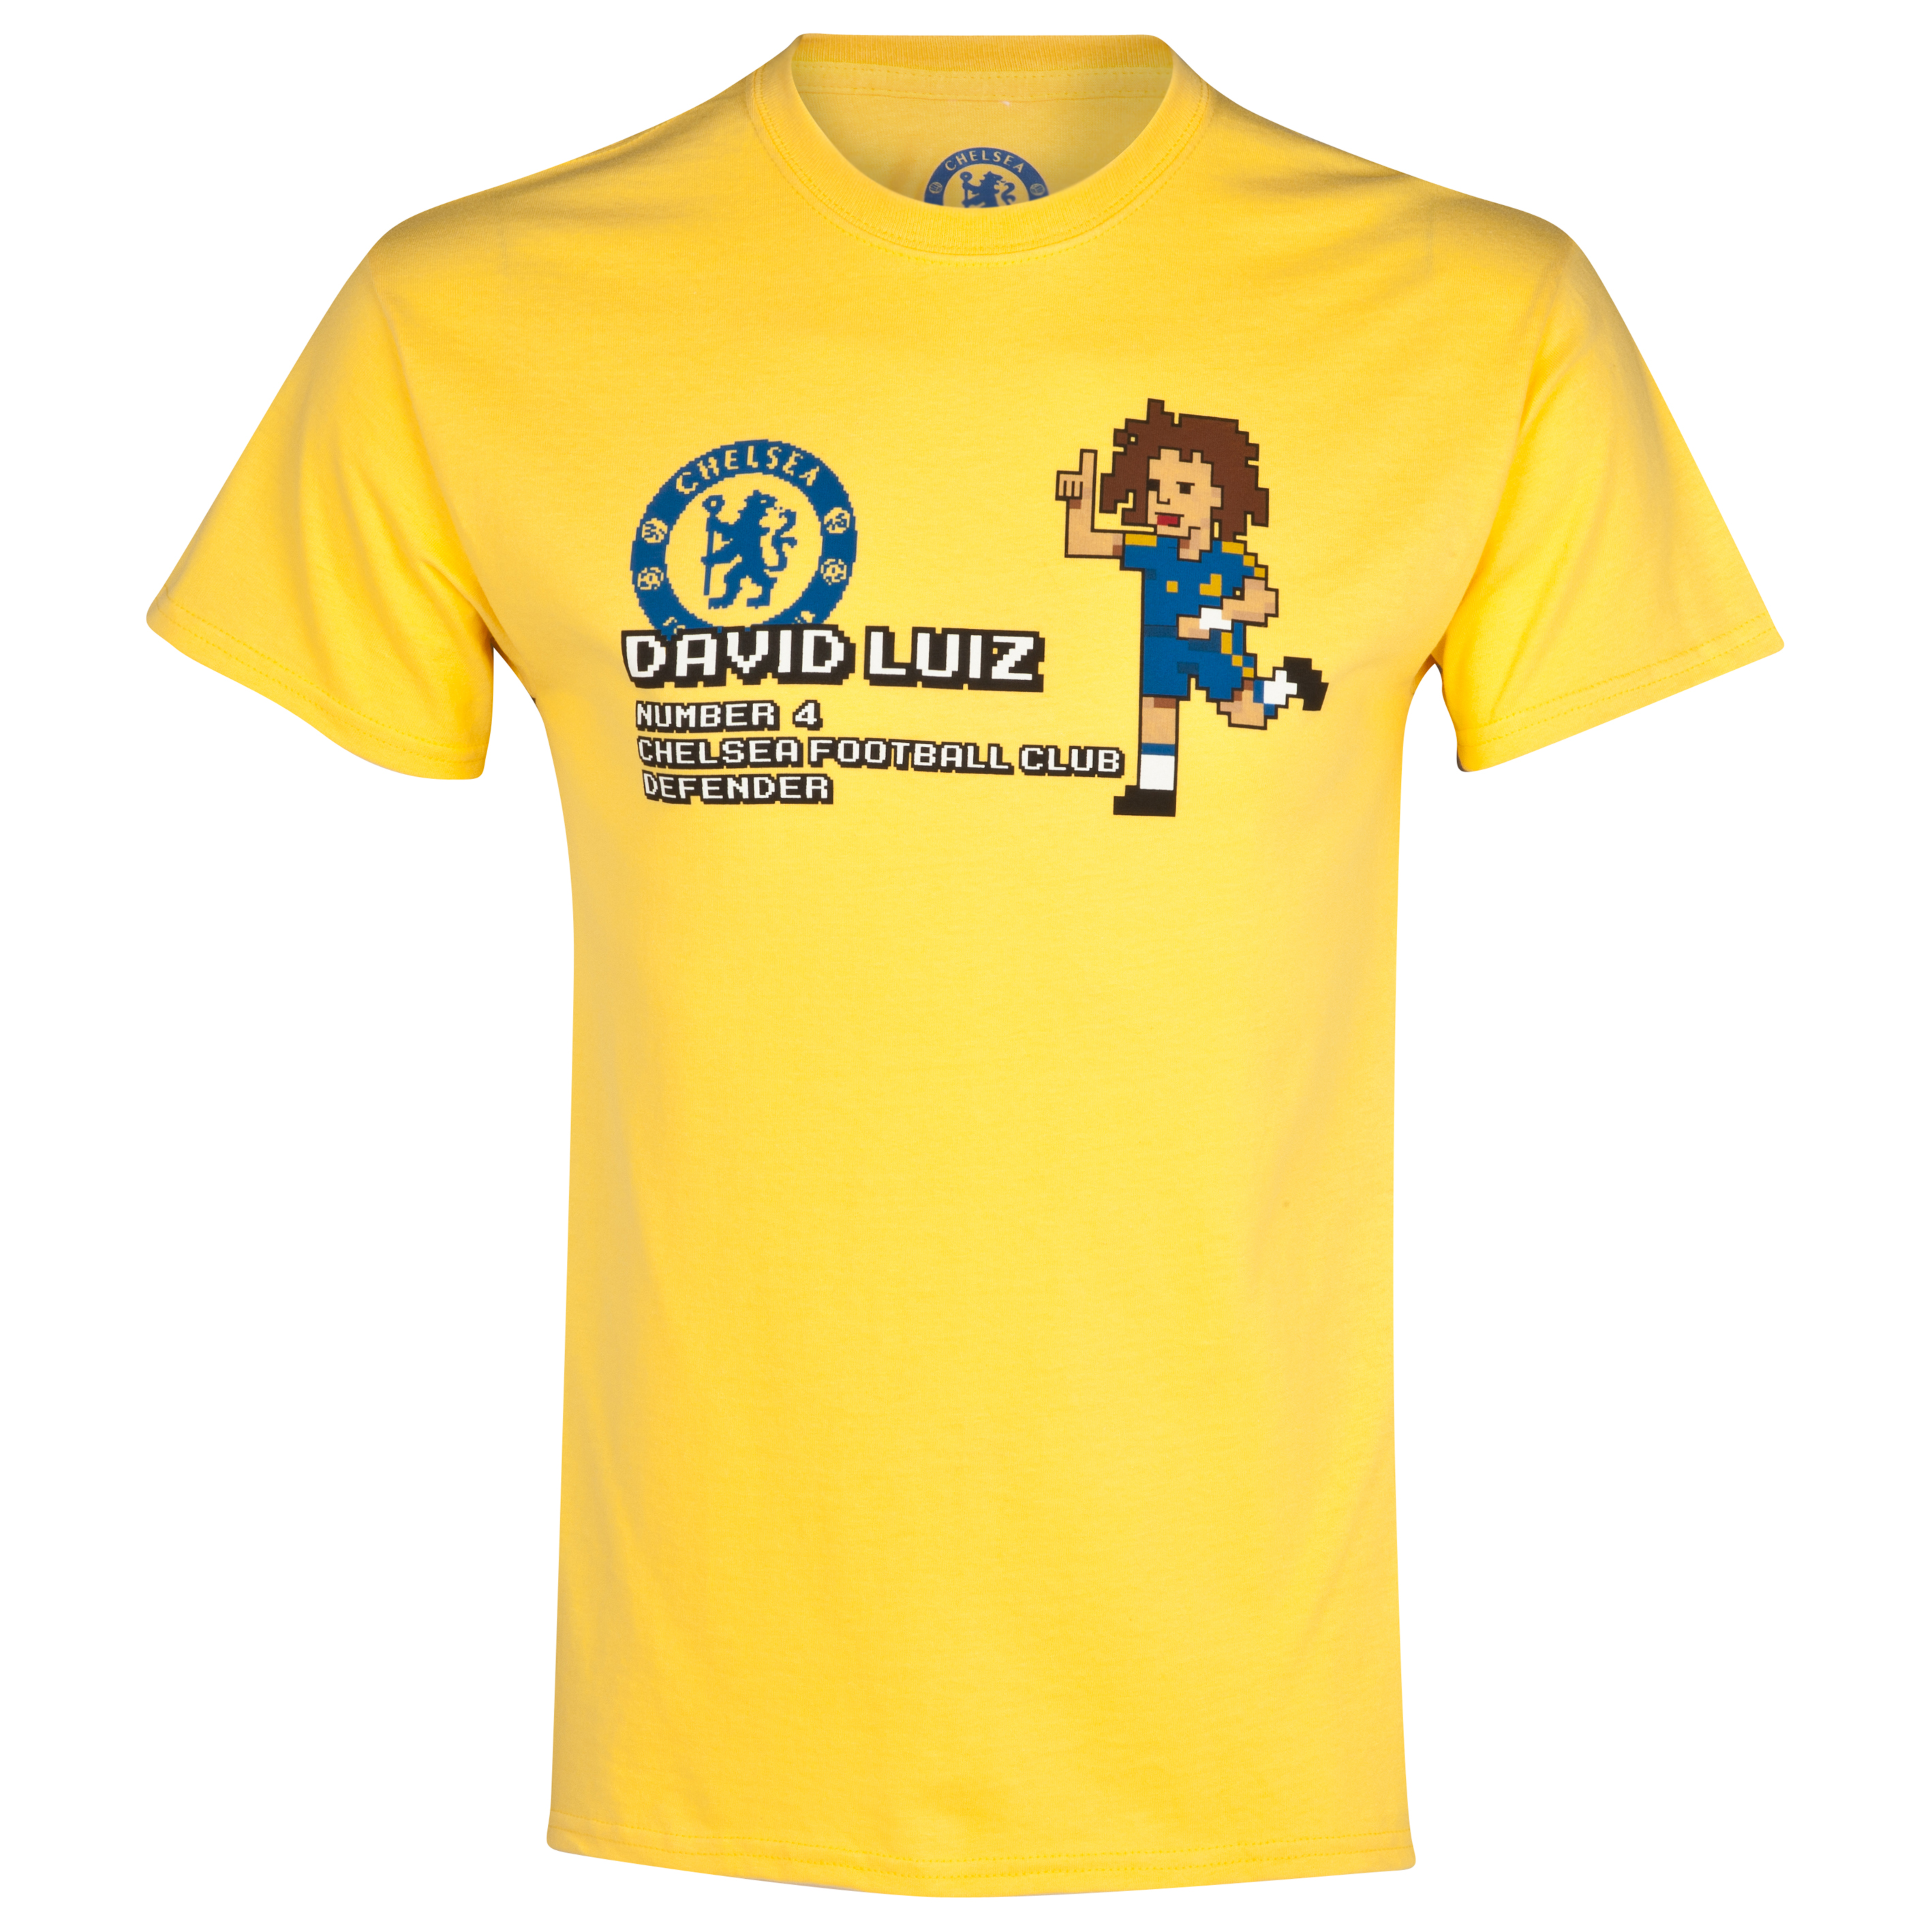 Chelsea David Luiz Pixel T-Shirt - Boys Yellow